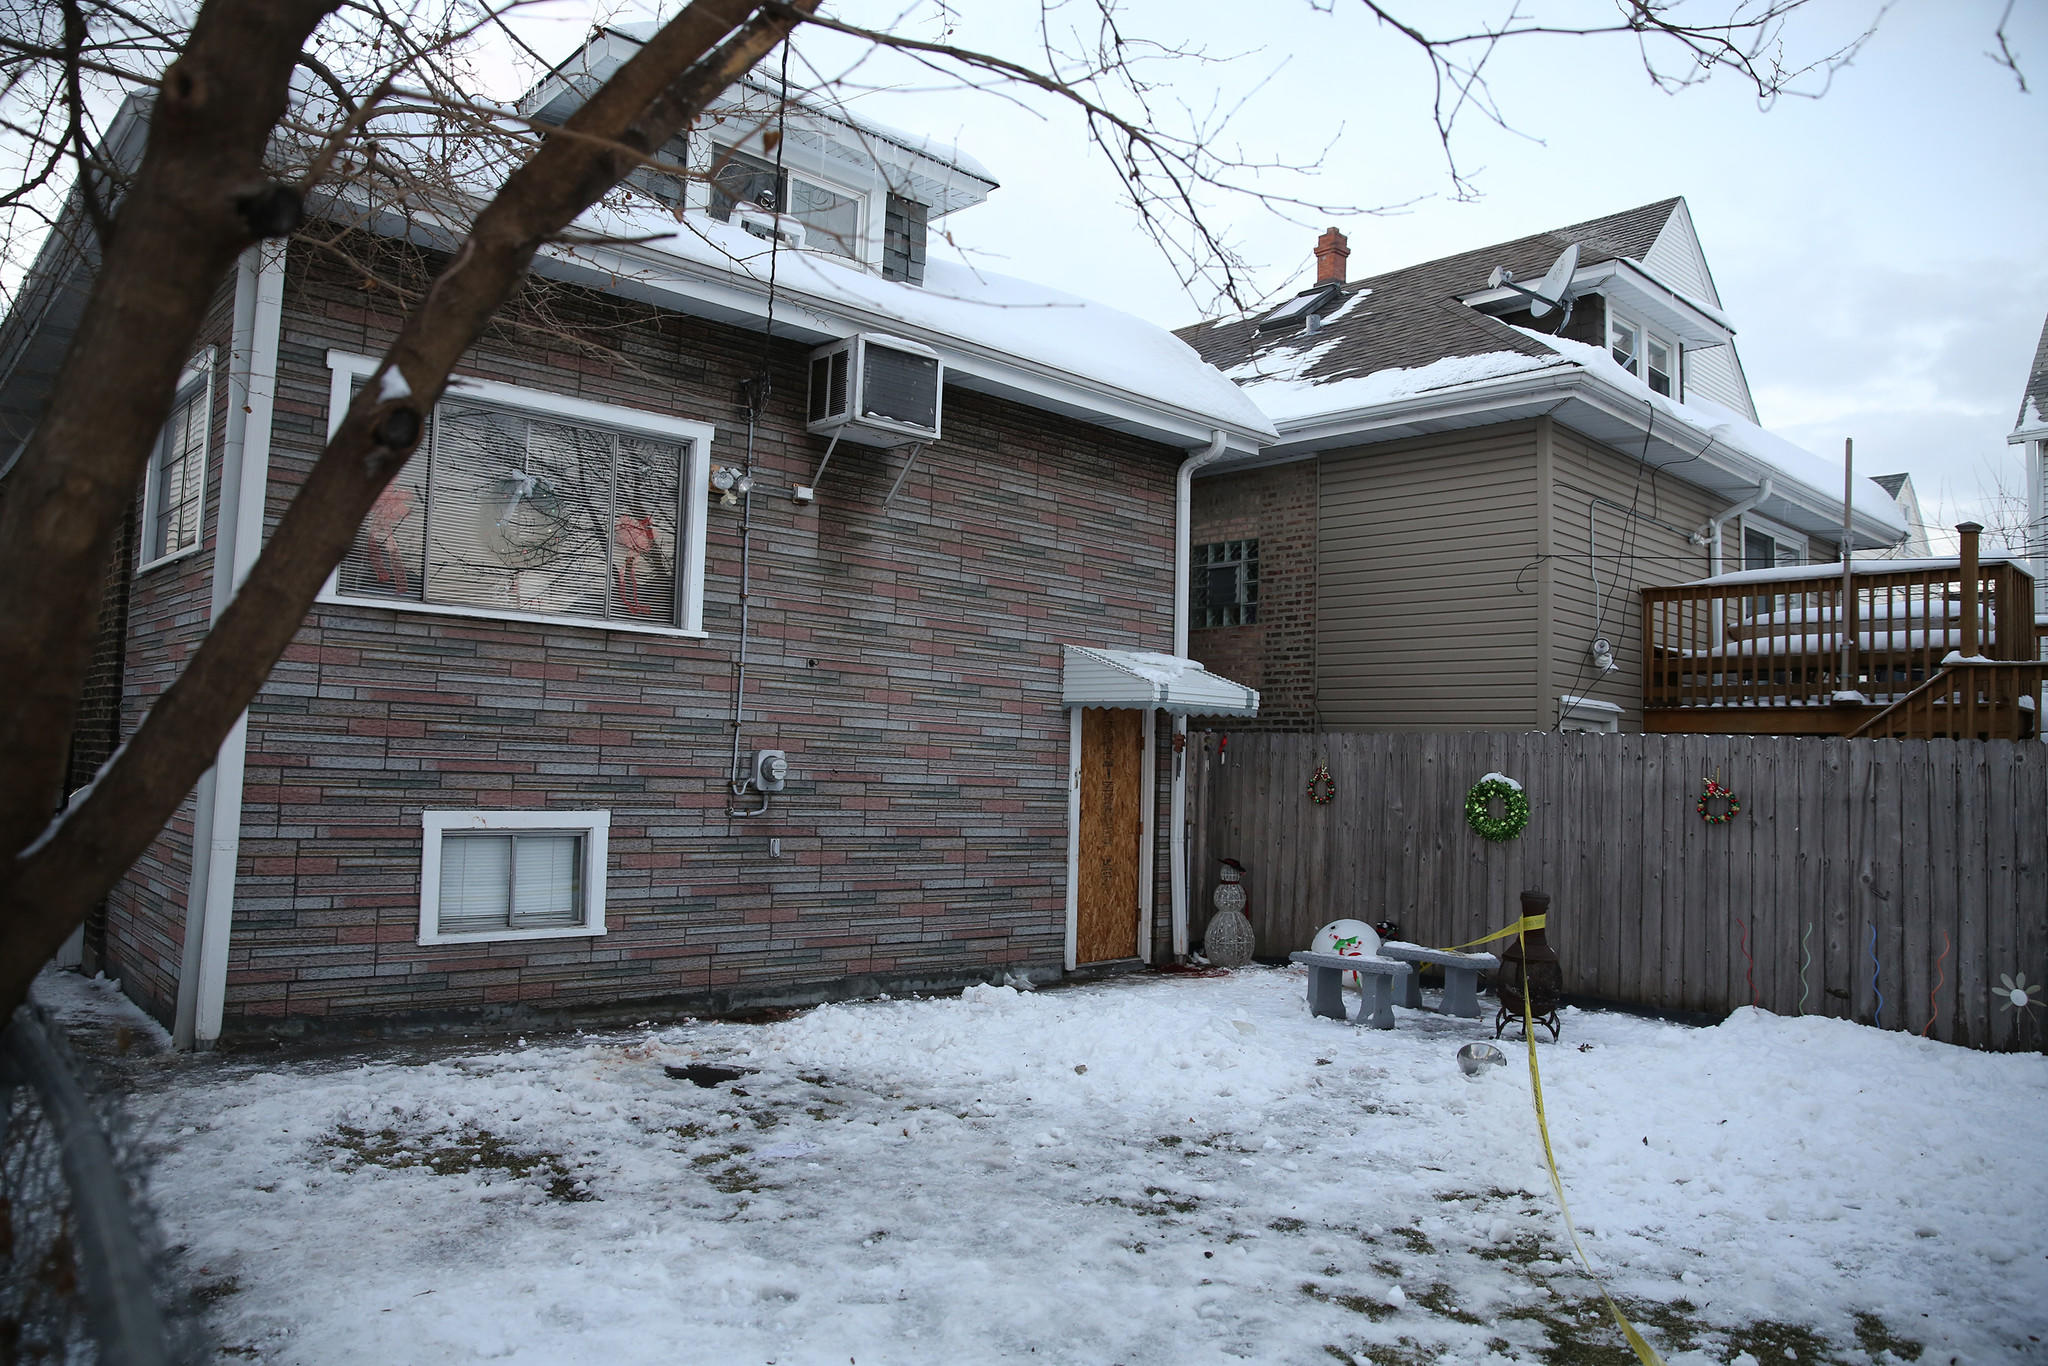 The backyard of a home in the 2400 block of Long Ave. in Chicago, where a 15-year-old girl was sexually assaulted and beaten. Blood was still present on the window frame and on the snowy ground.